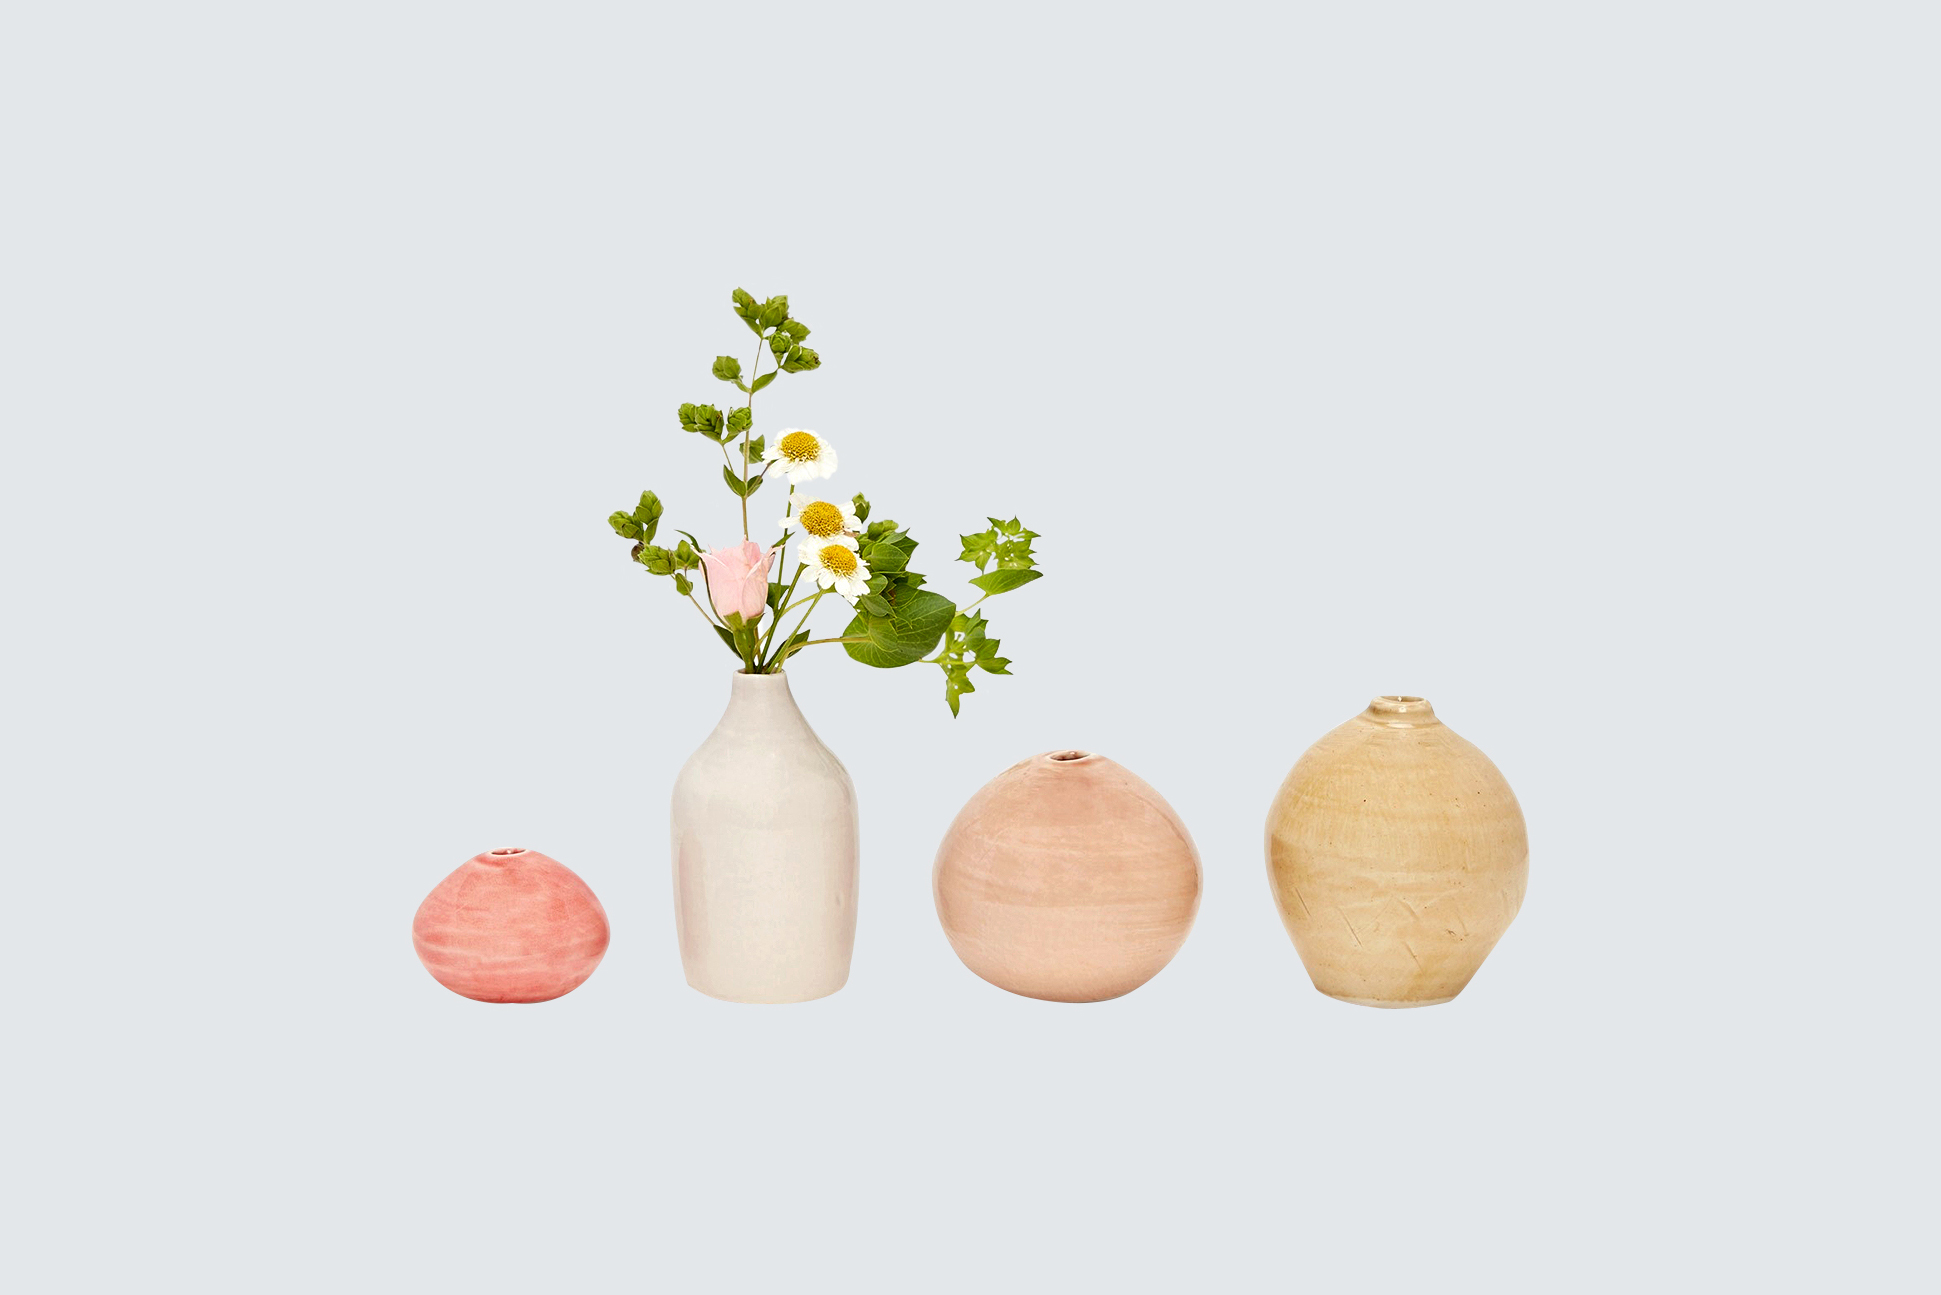 glazed ceramic vases by ABC Carpet and Home